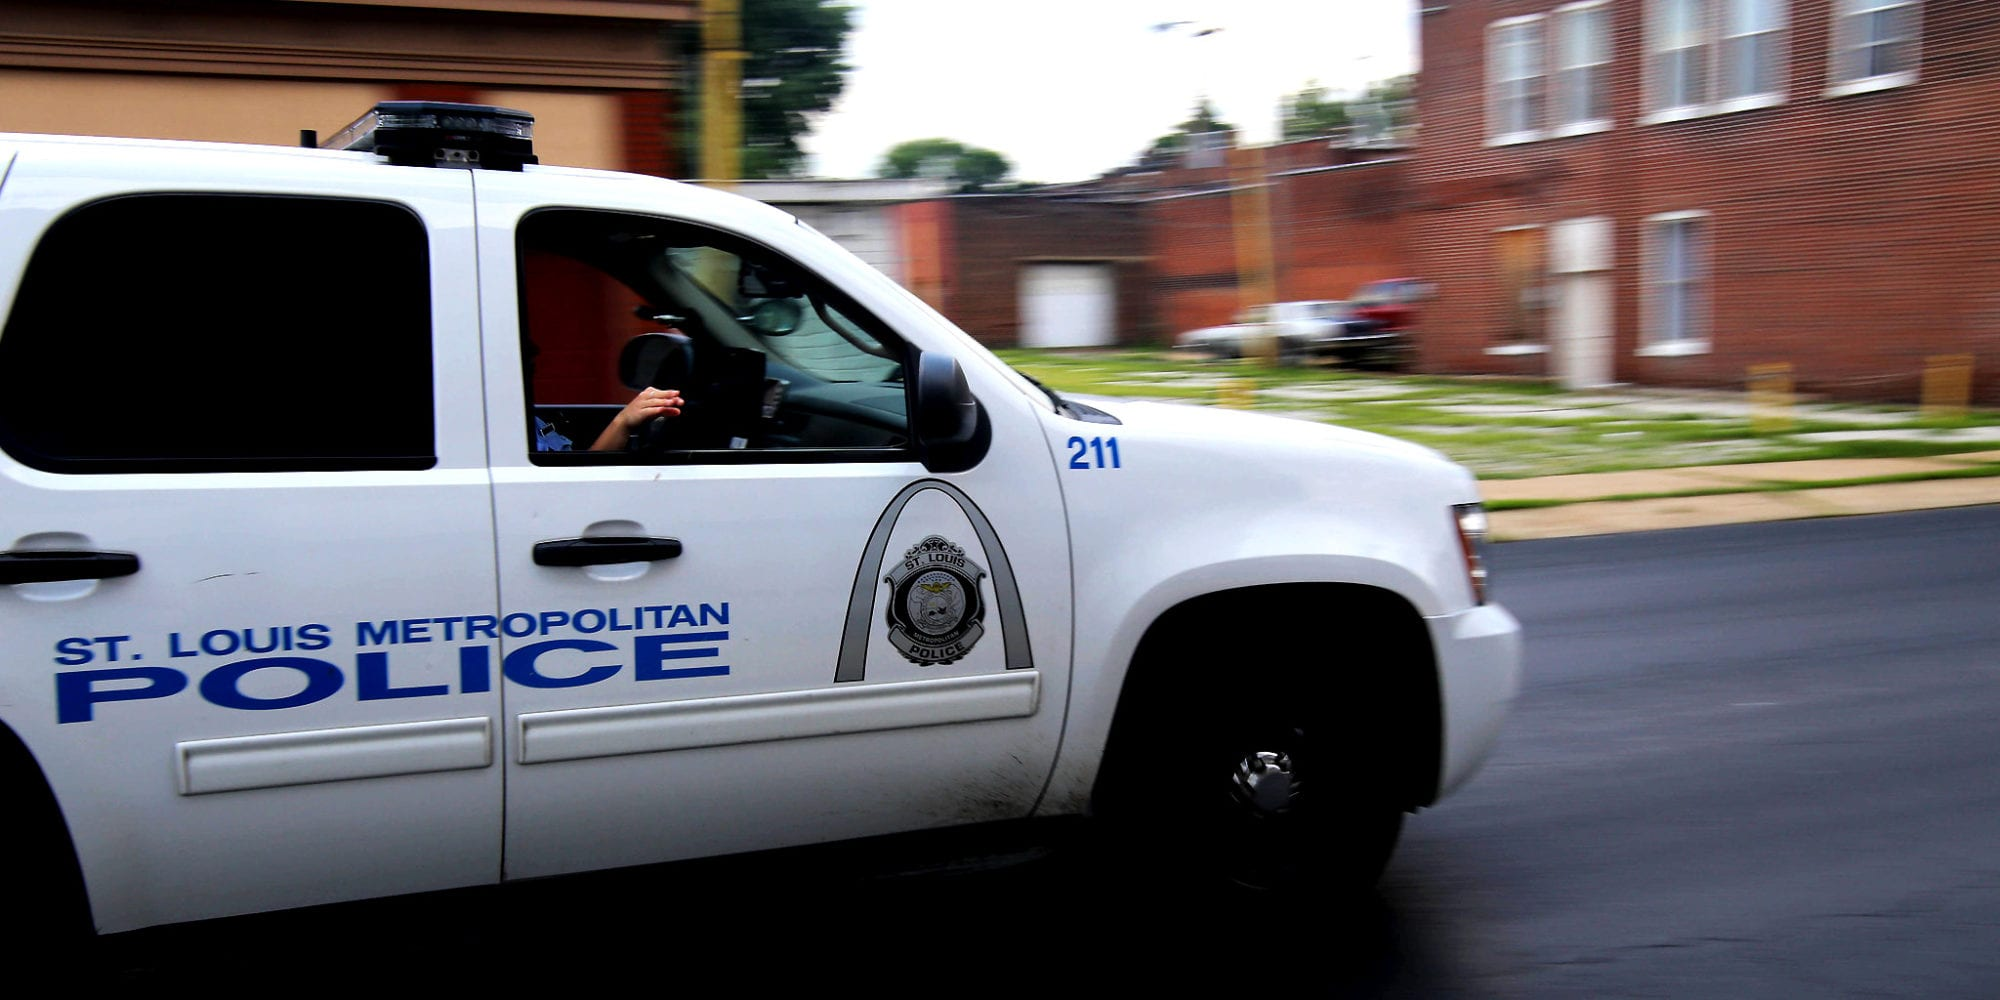 St. Louis Metropolitan Police Department SUV driving down Chippewa Street in the Dutchtown neighborhood. Photo by Paul Sableman.